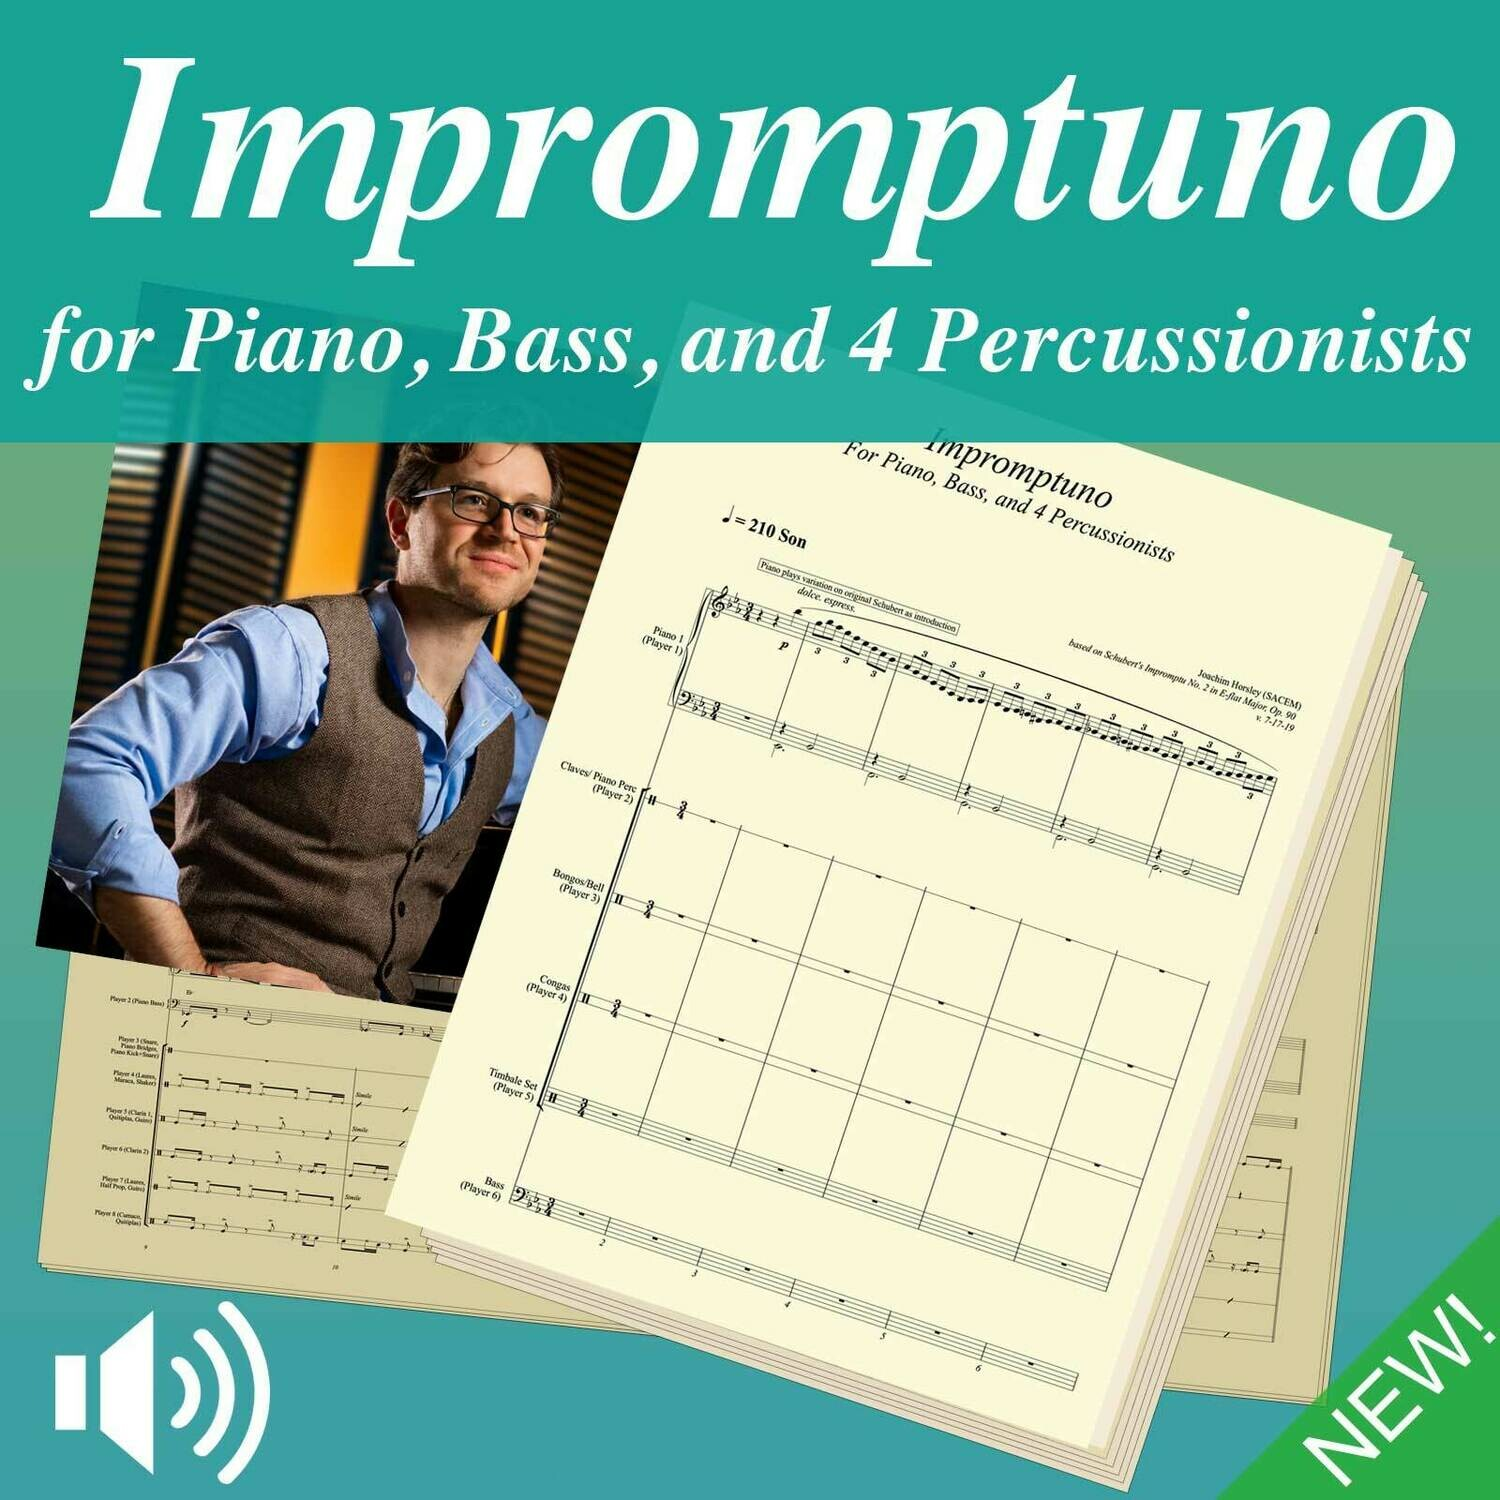 Impromptuno (Score, Parts, and Play-Along mp3s)